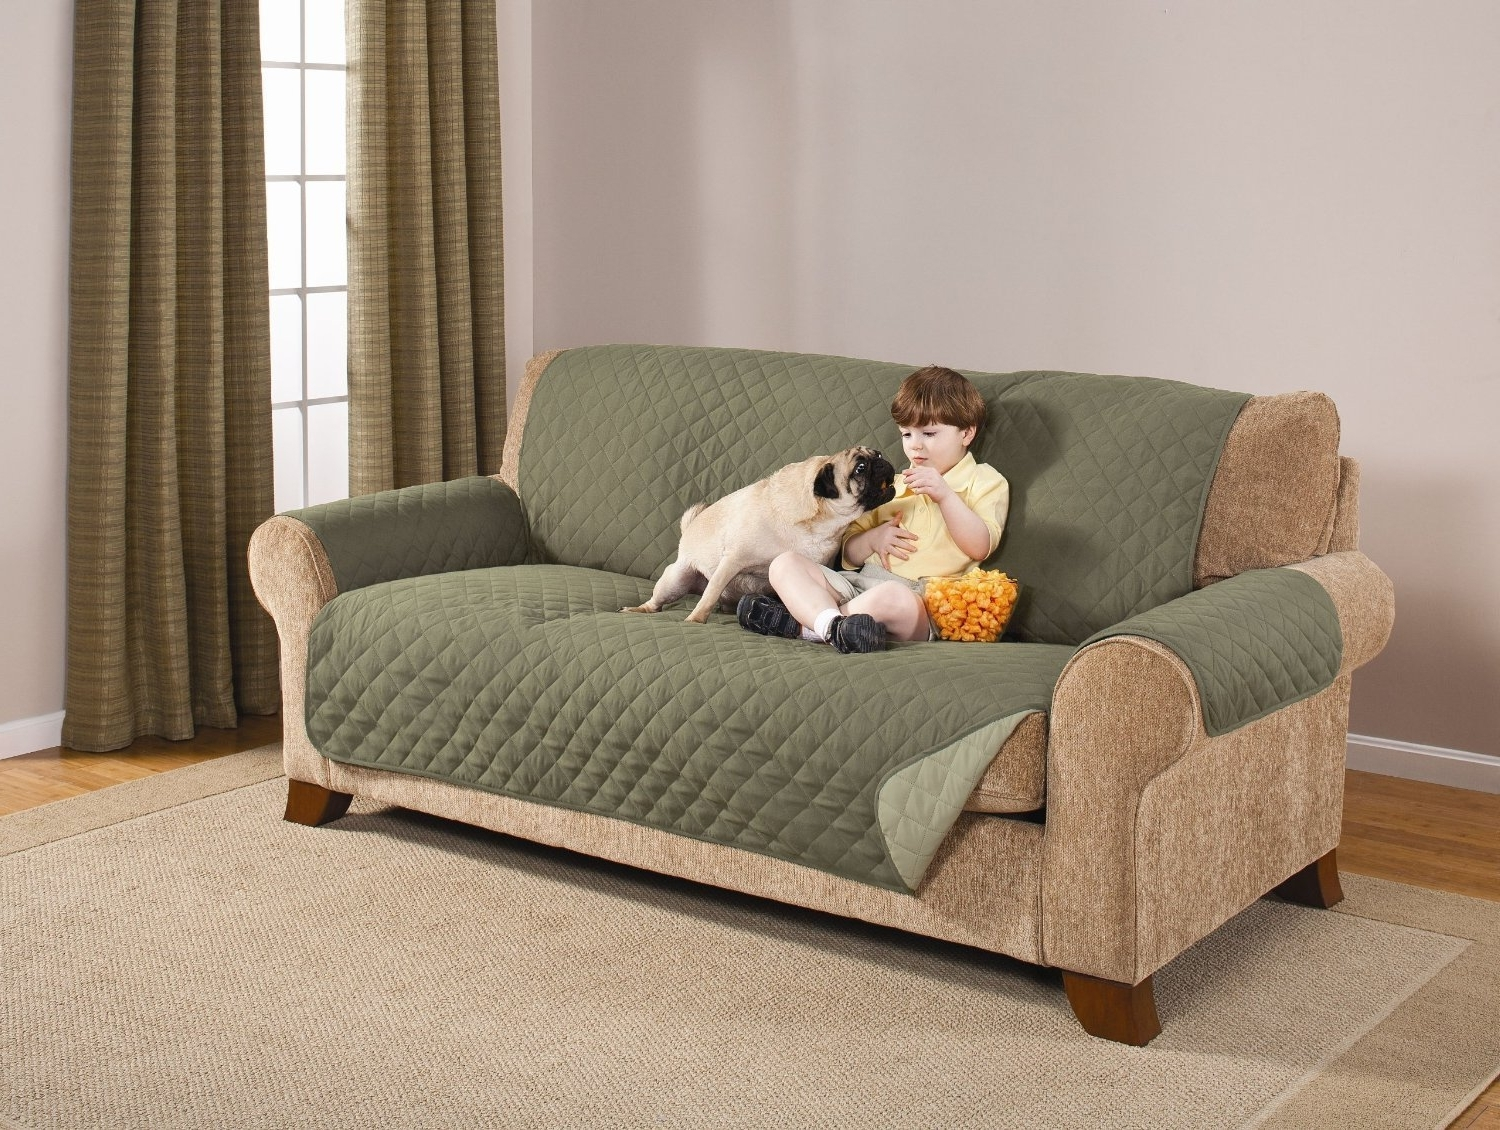 Recent Top 10 Best Sofa Covers For Pets – Pet Sofa Covers To Keep Clean With Regard To Wide Sofa Chairs (View 14 of 15)